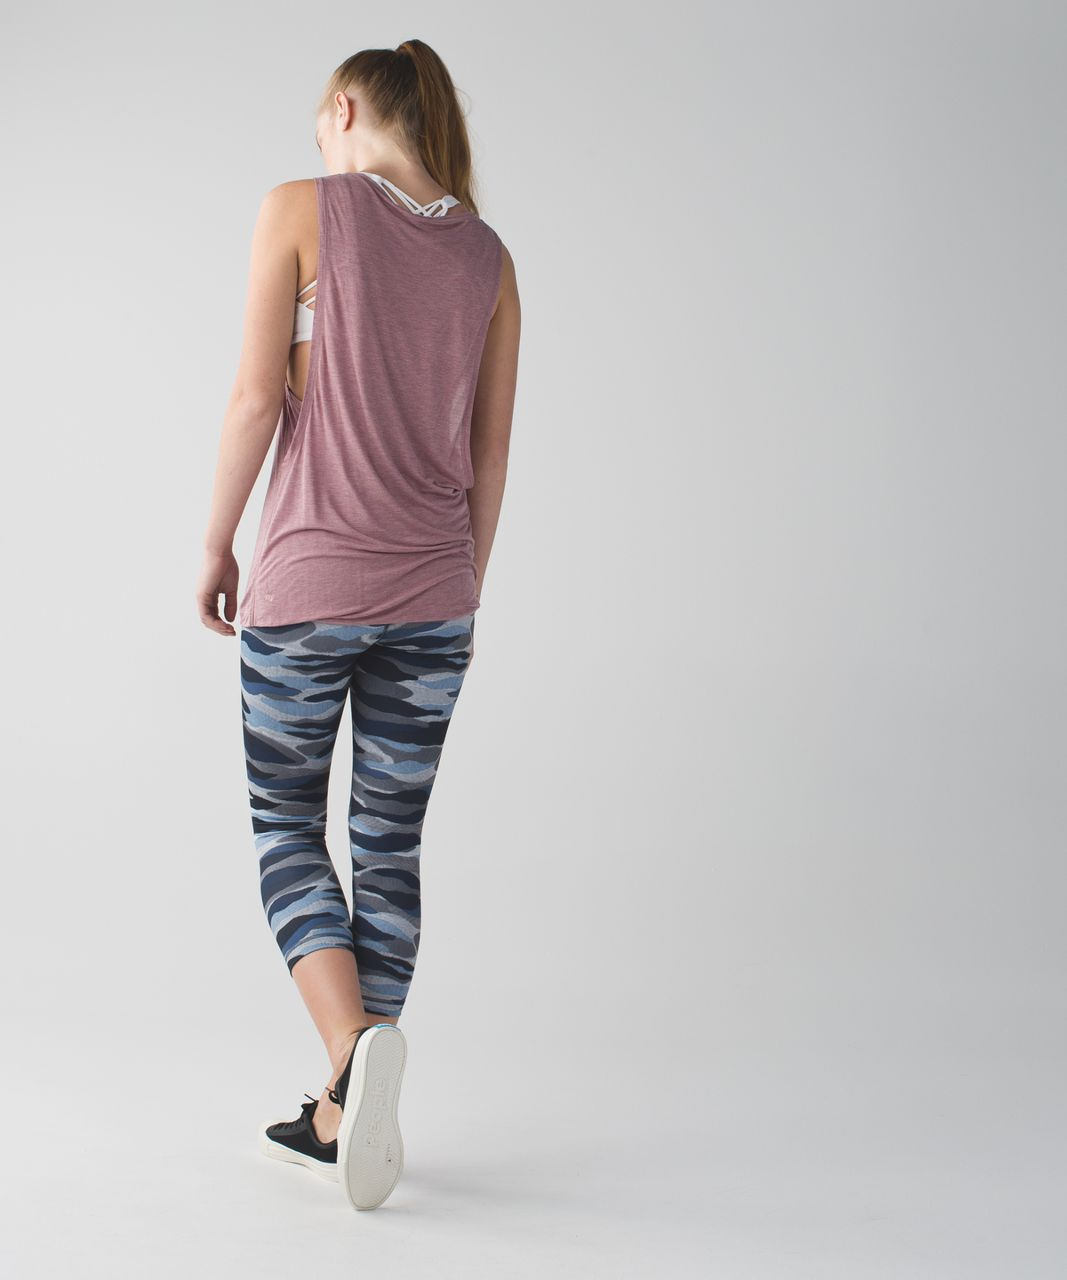 Lululemon Wunder Under Crop (Hi-Rise) *Full-On Luon - Mini Coast Camo Deep Navy Multi